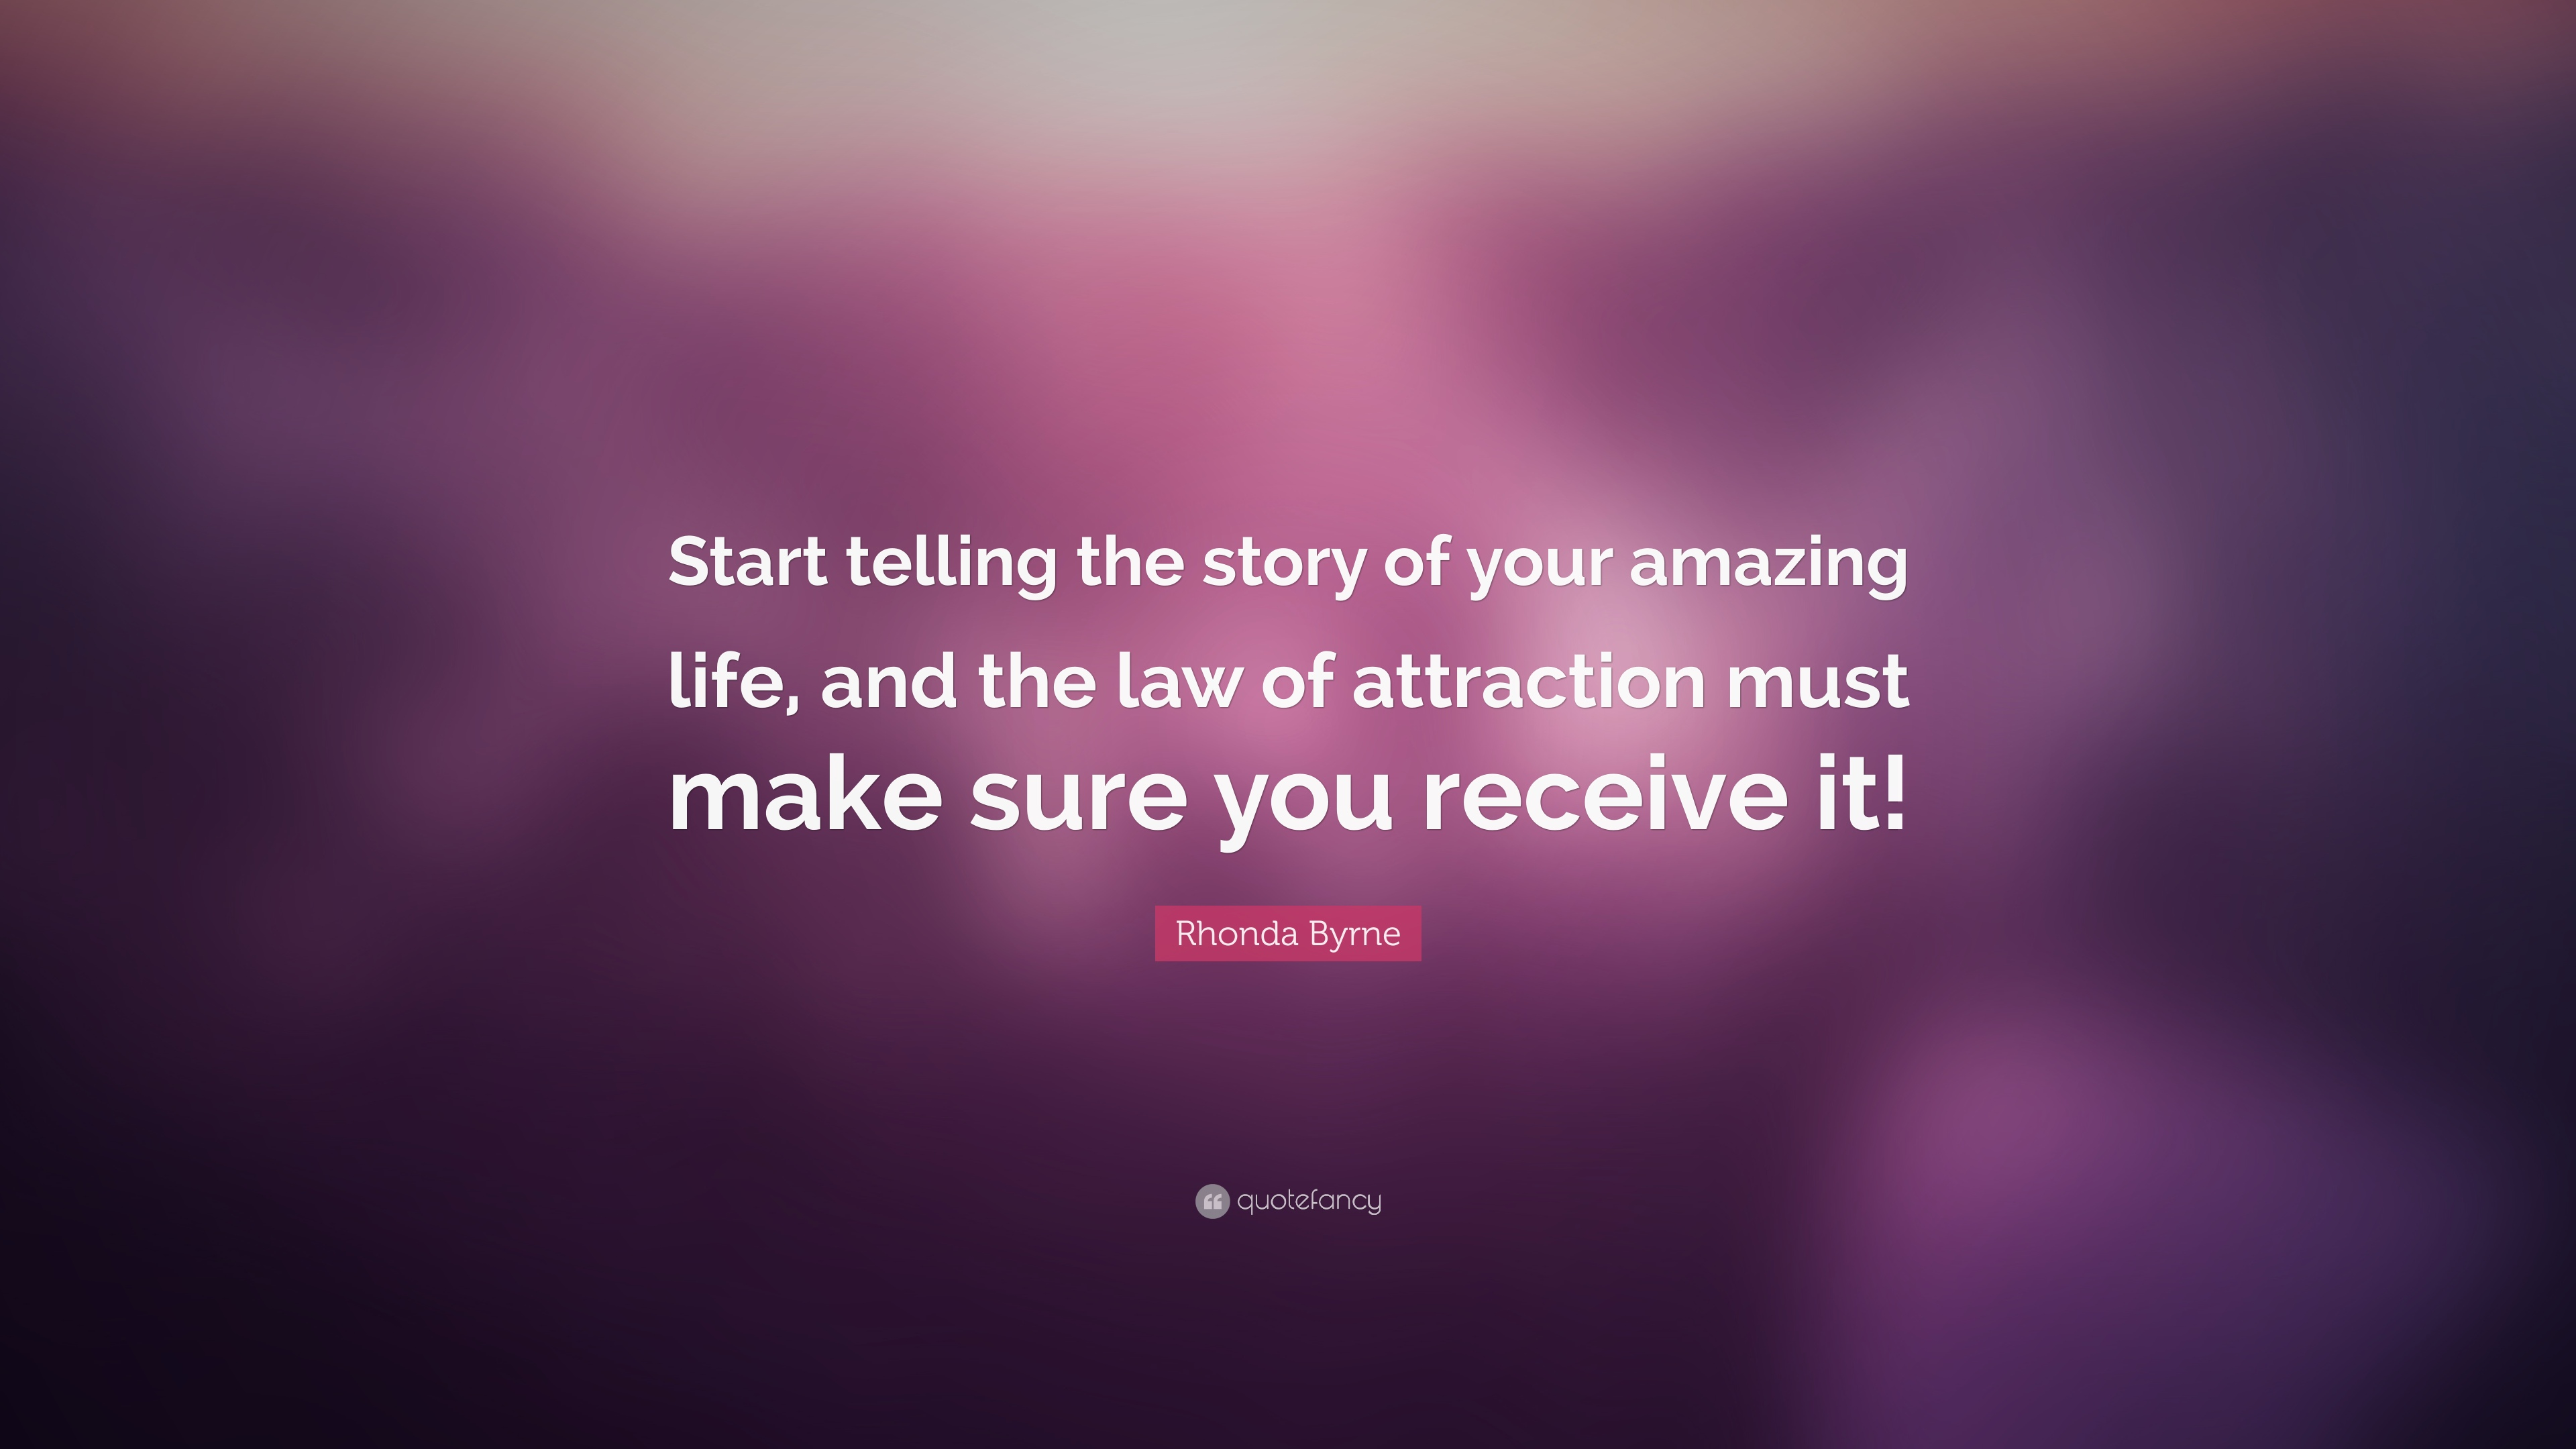 Laws Of Attraction Quotes Law Of Attraction Quotes 40 Wallpapers  Quotefancy